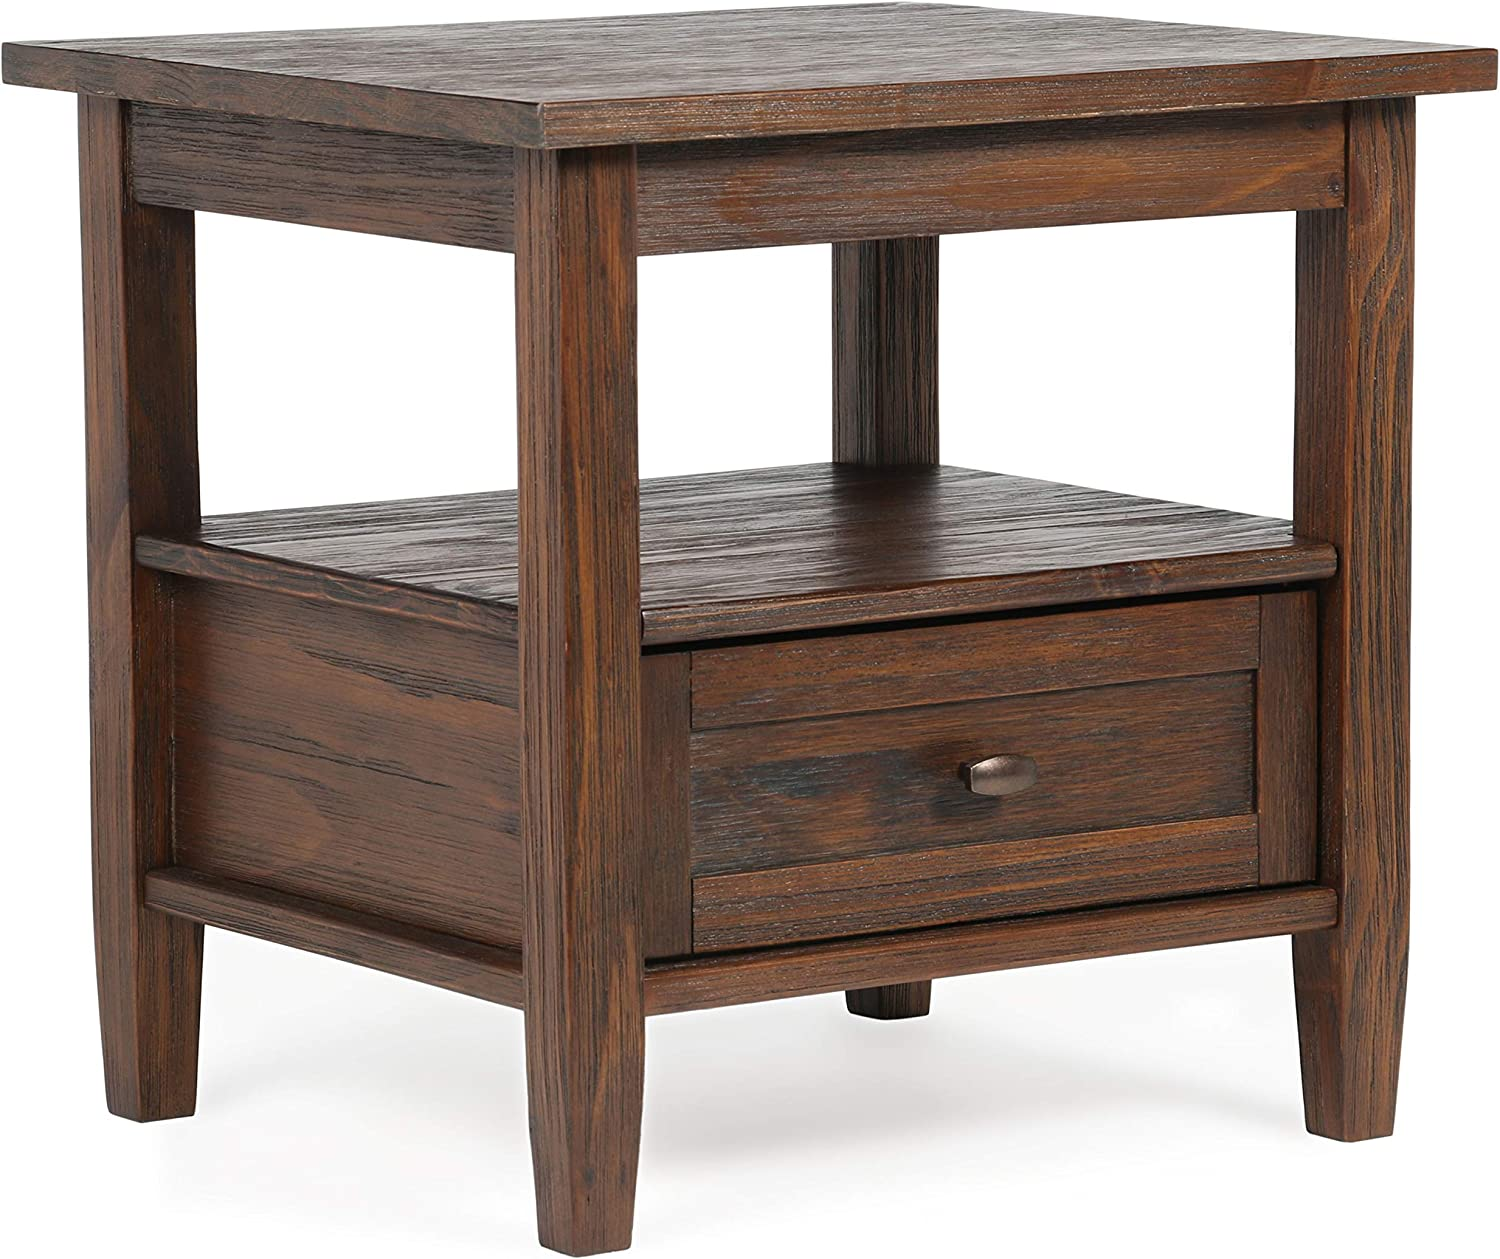 Simpli Home Warm Shaker End Table, 20 inch, Distressed Charcoal Brown